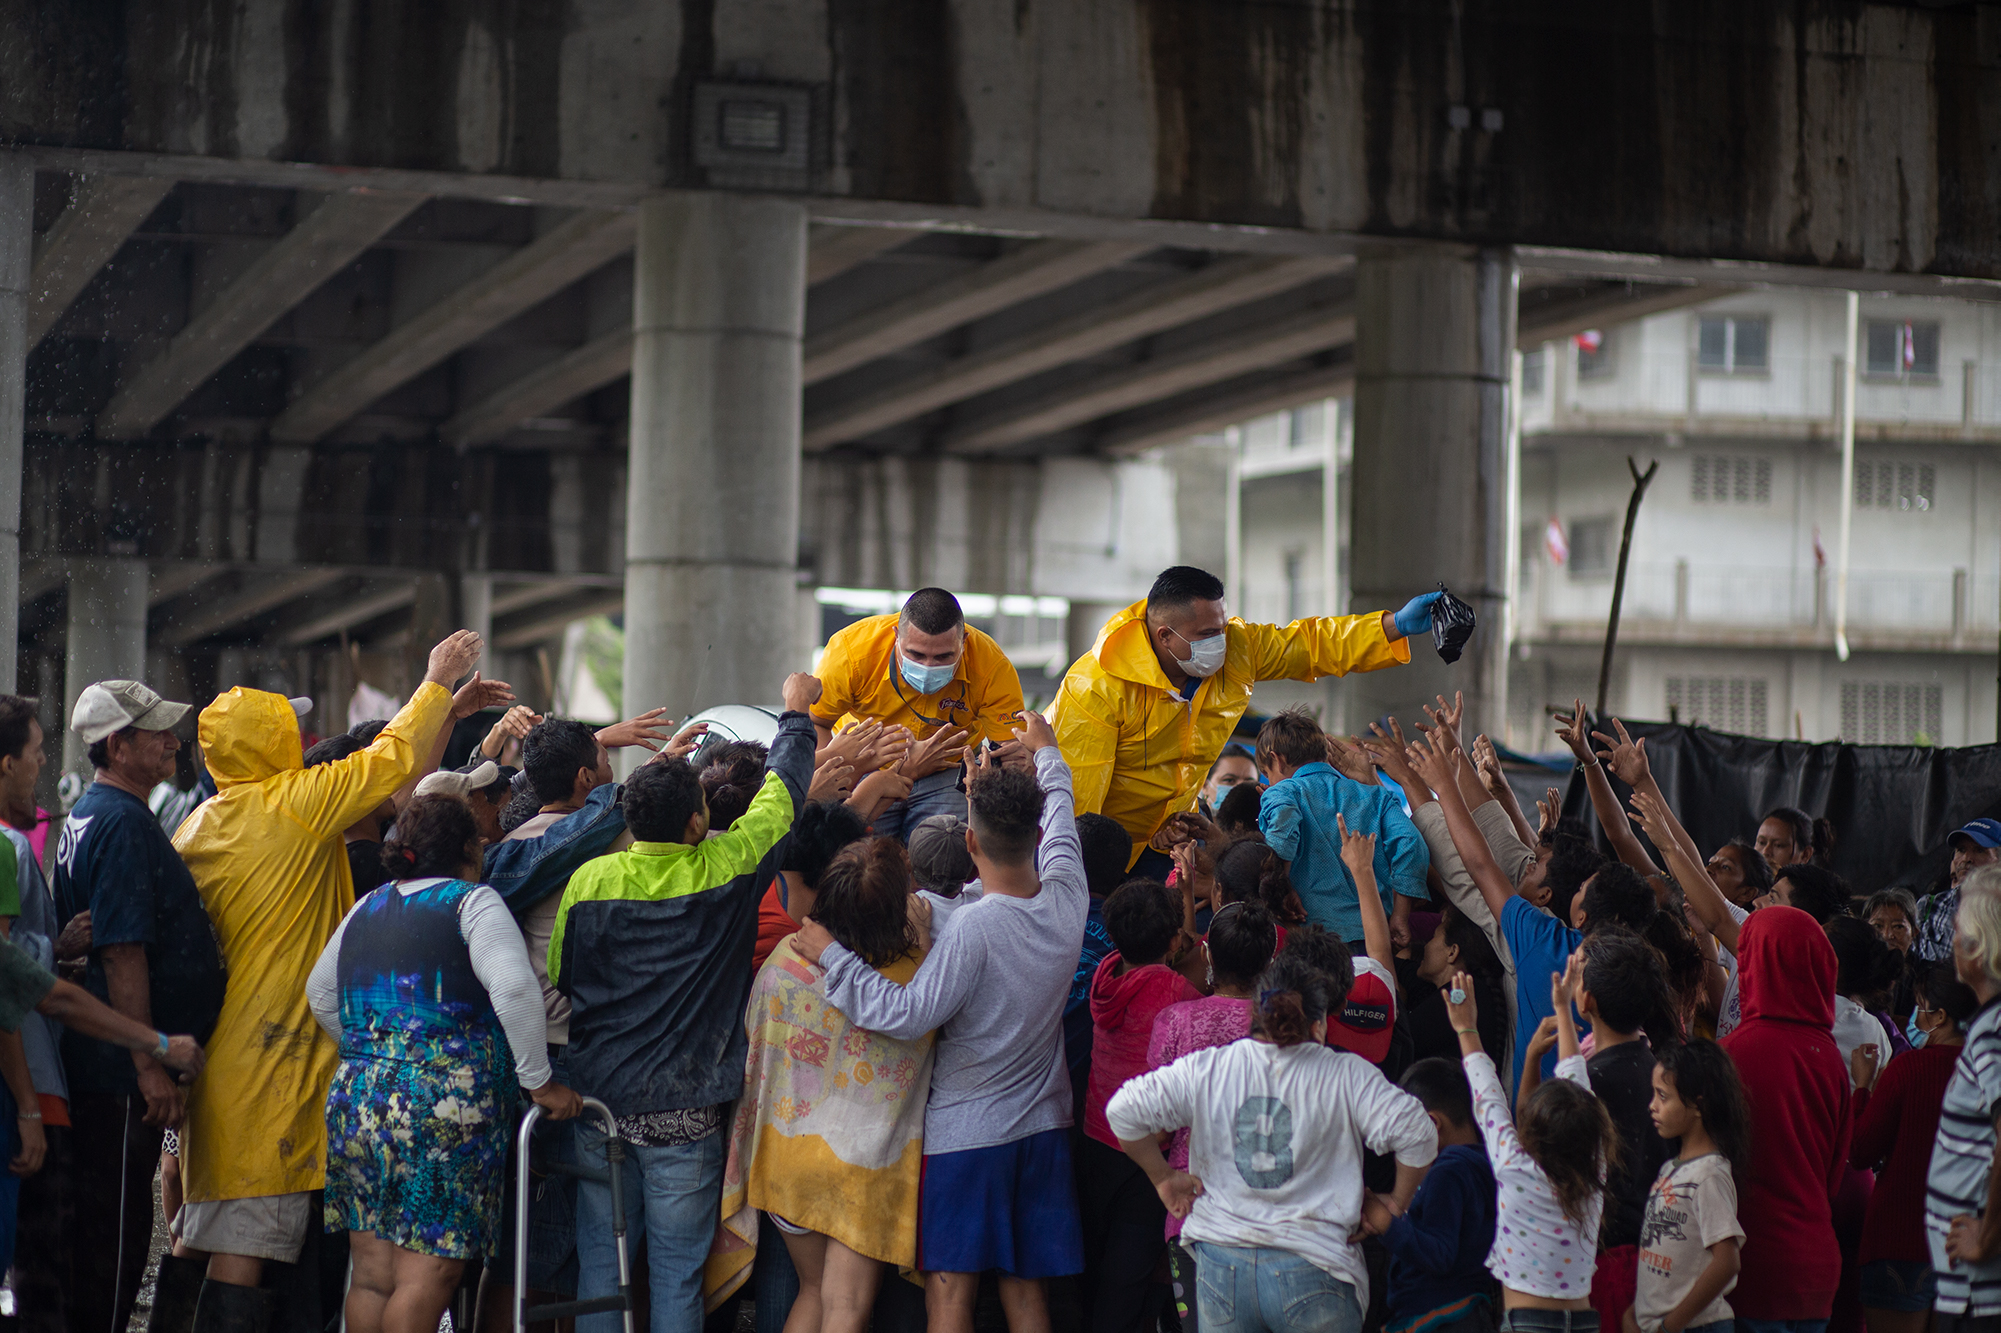 Workers from a chicken processing company give out tamales and juice to the homeless families of Chamelecón, underneath the bridge that leads to the west. San Pedro Sula, Nov. 21, 2020. Photo: Martín Cálix.